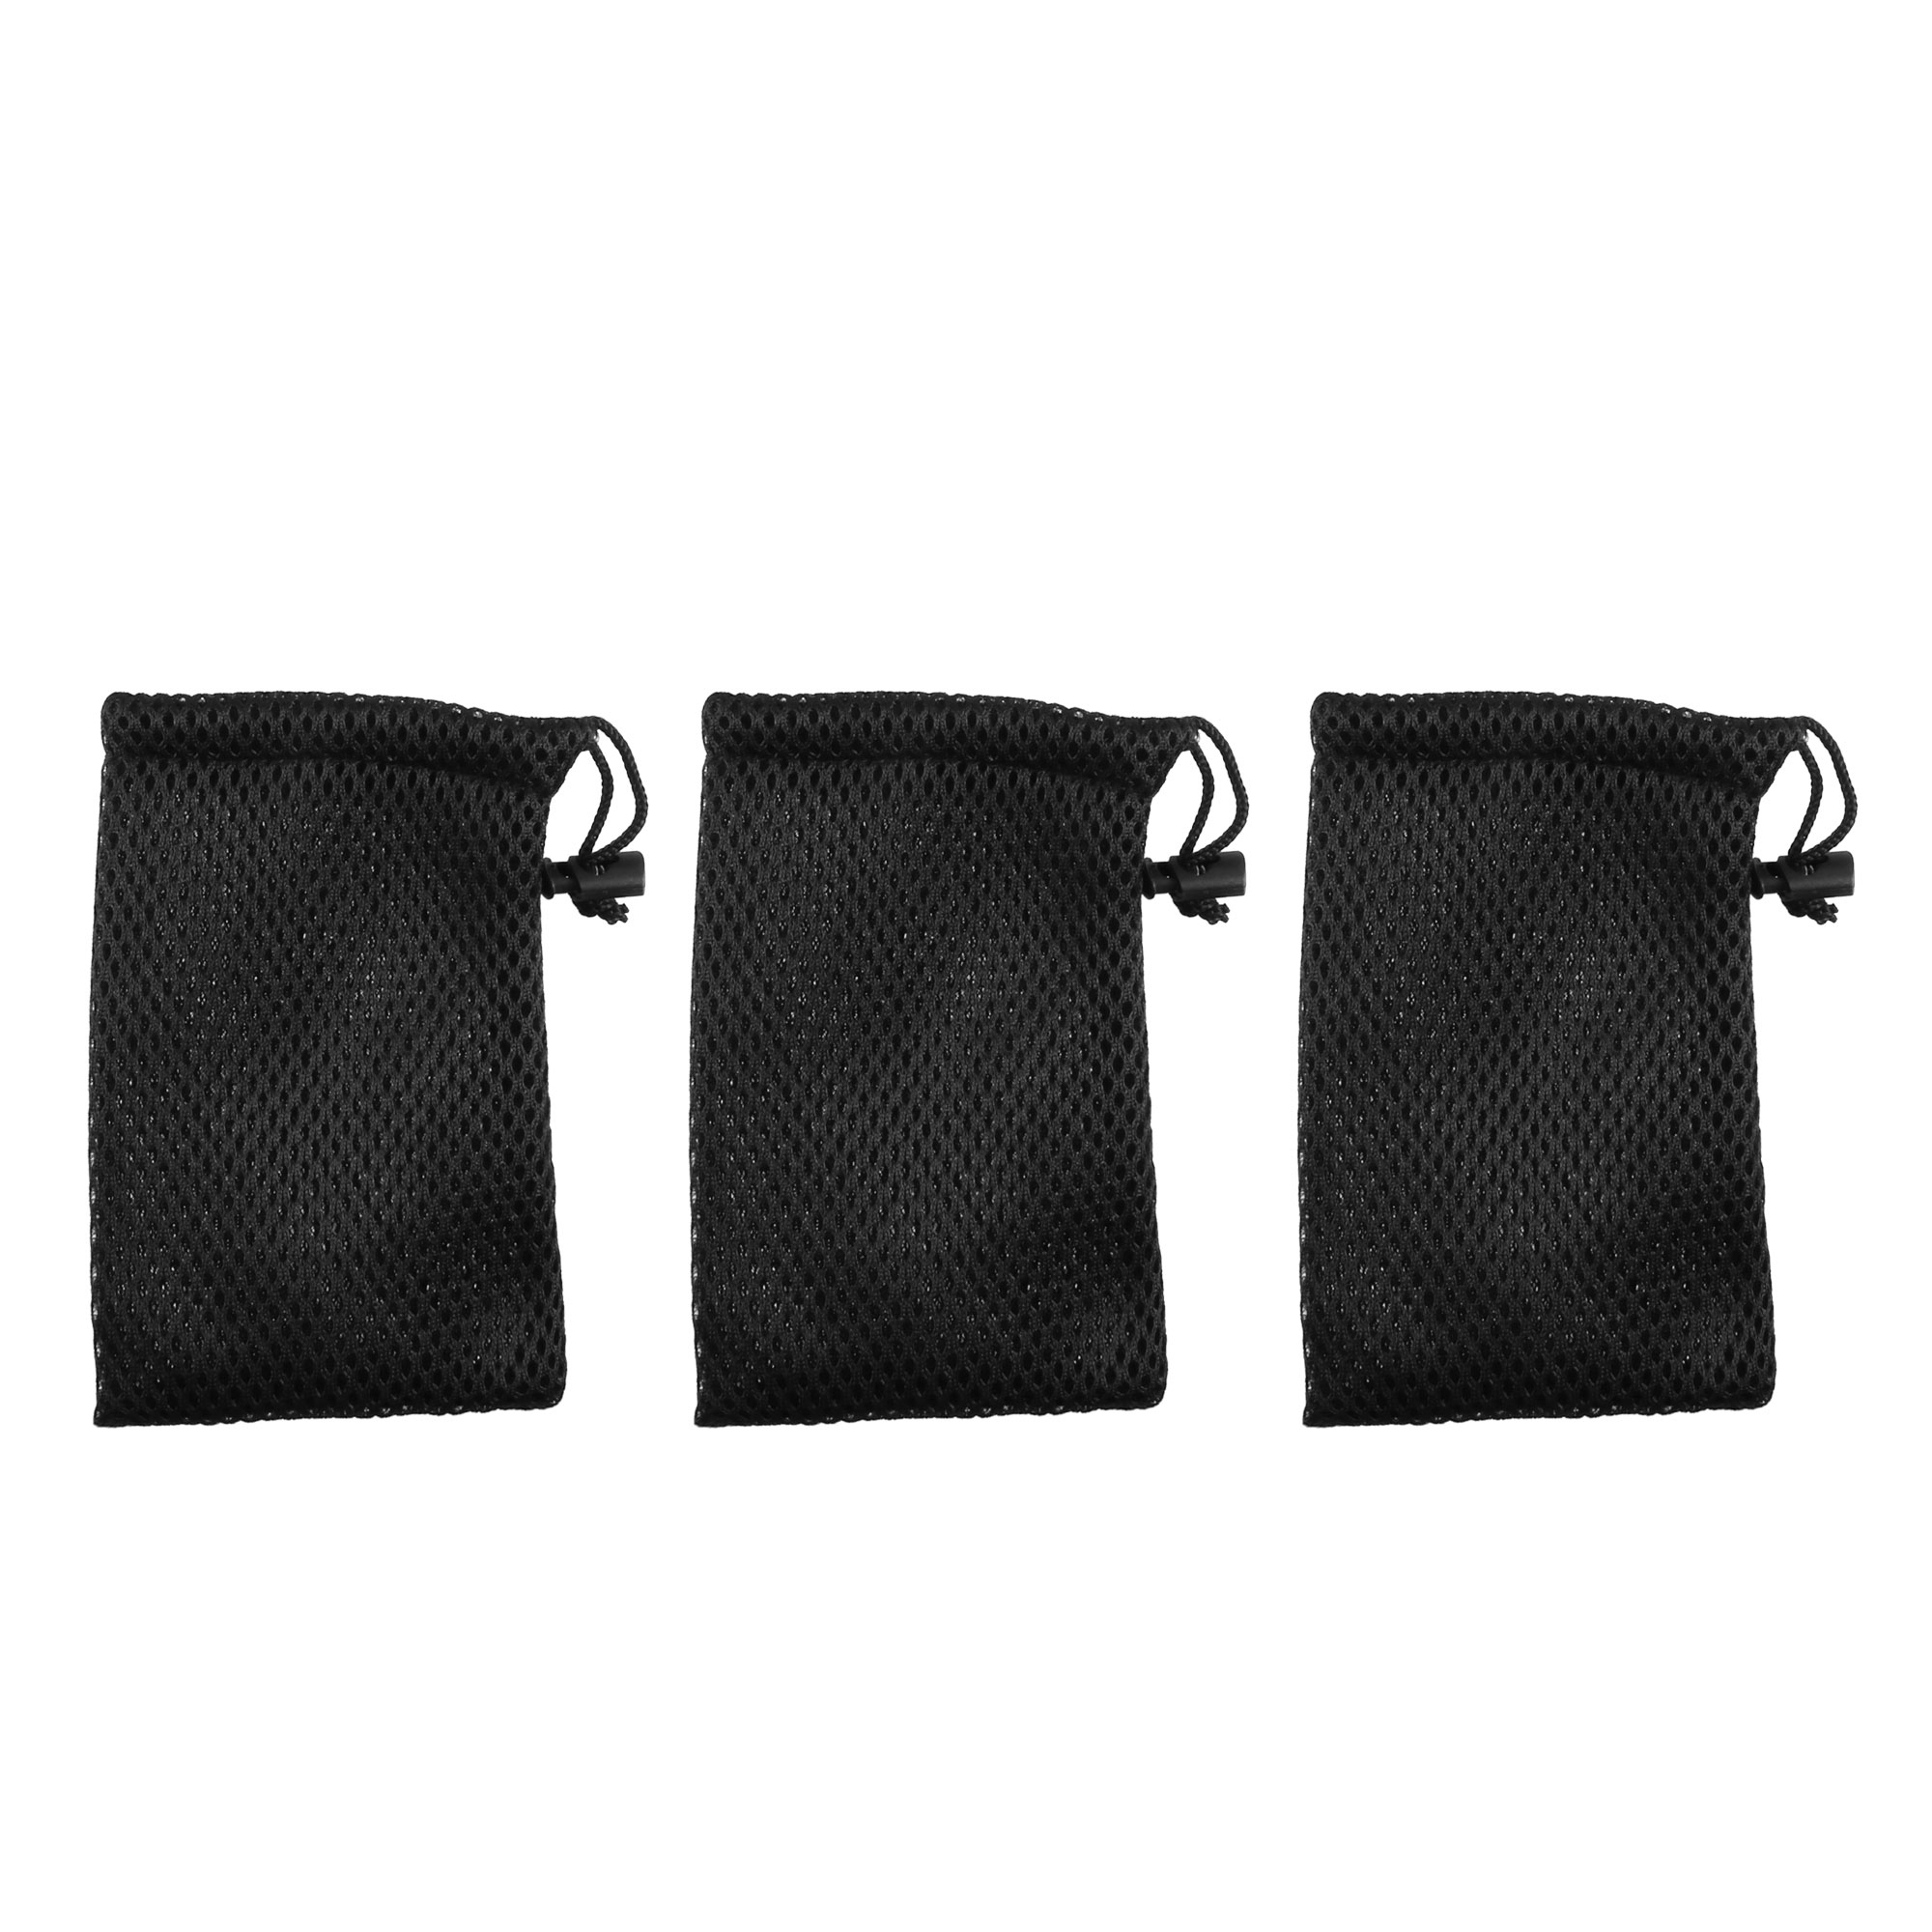 Drawstring Closure Black Cell Phone MP3 Nylon Mesh Pouch Bags 3 Pcs